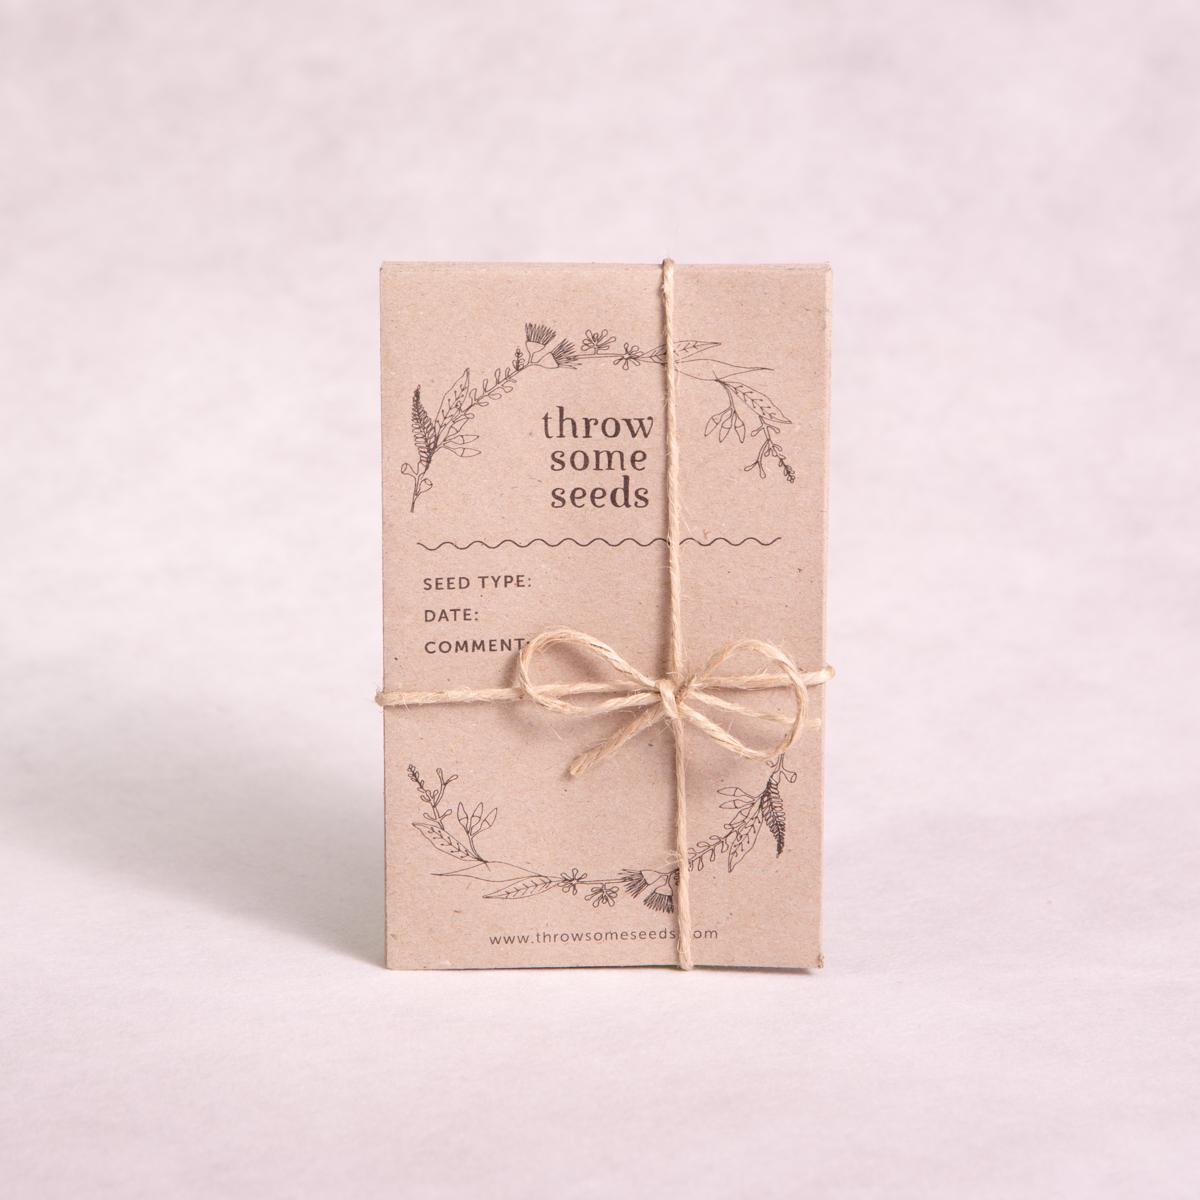 Gift Pack - The Garden Guru | Eco-friendly, Nature Inspired Gifts ...